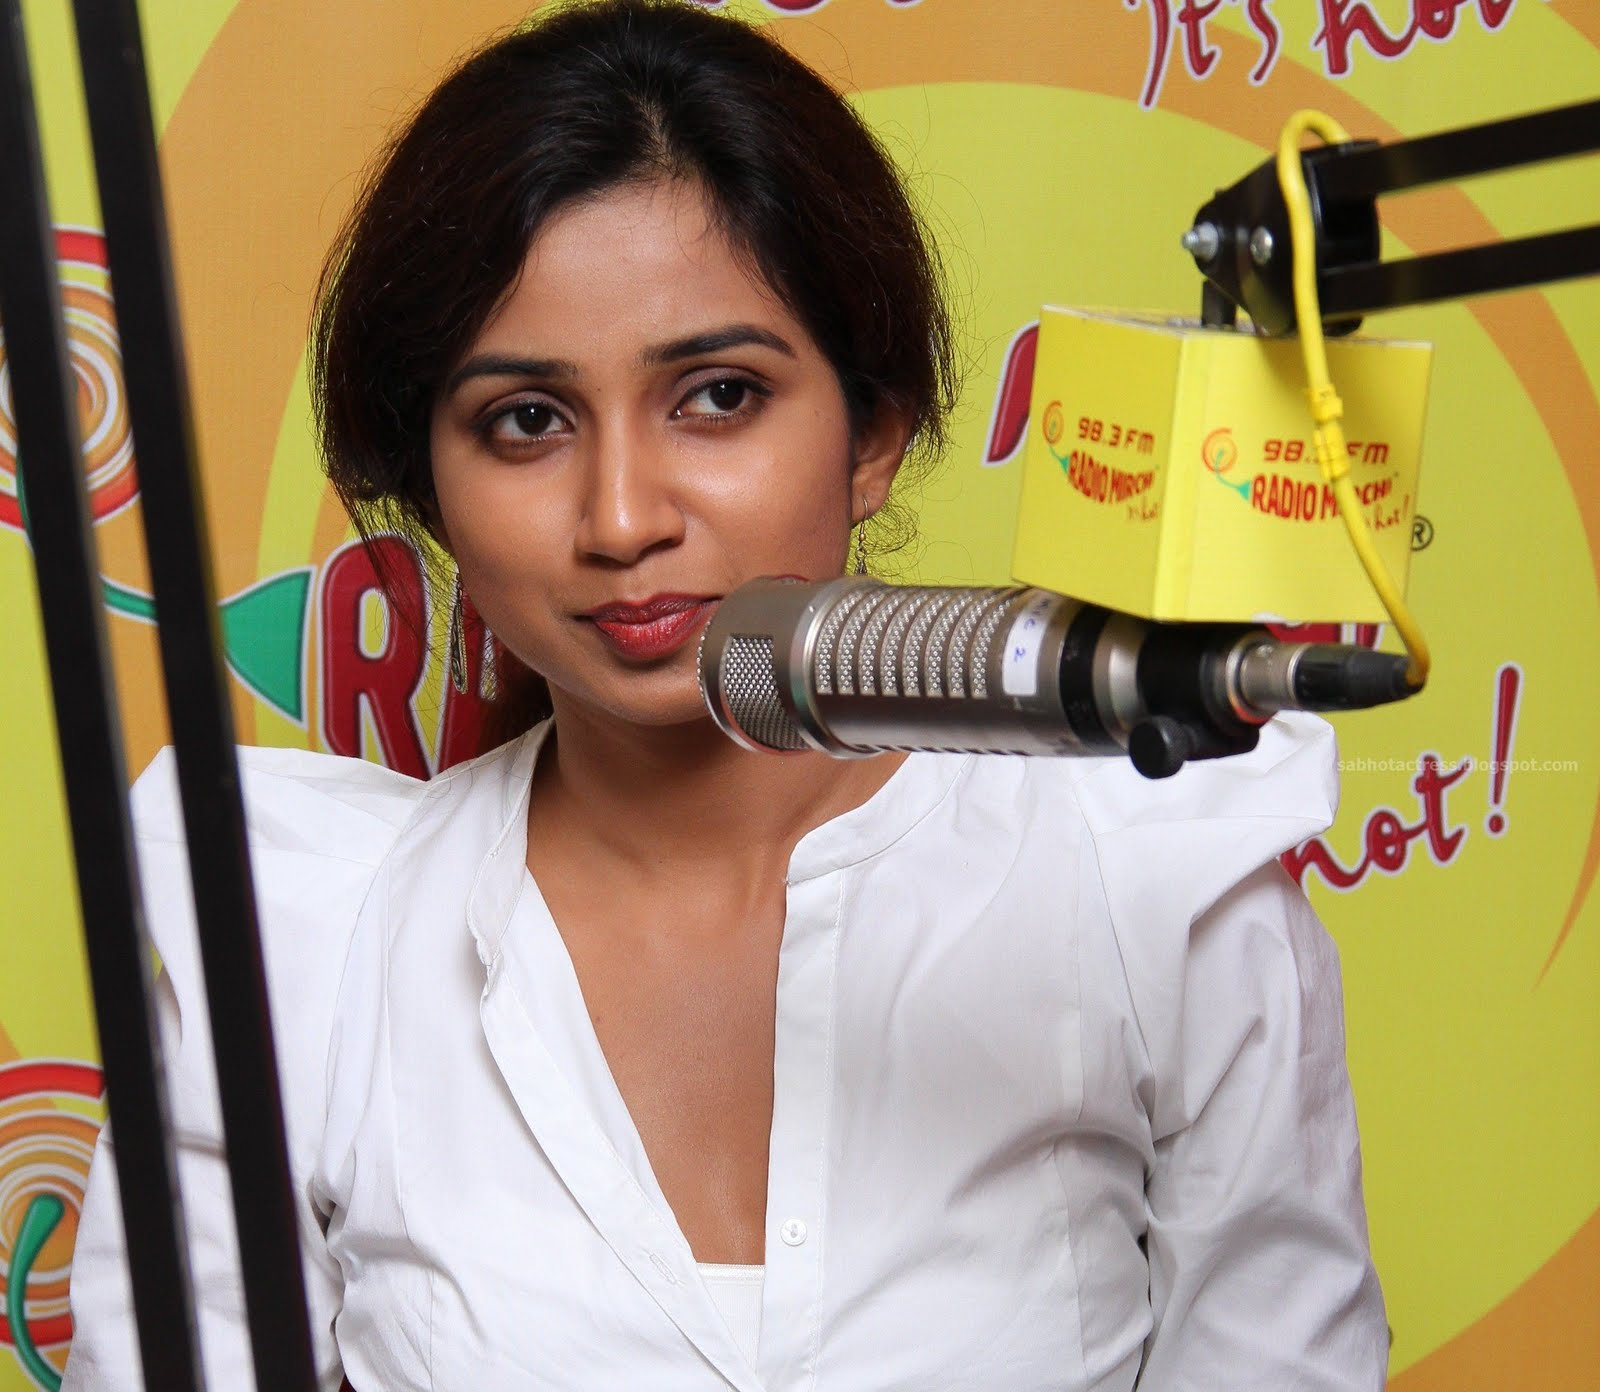 Sab Hot Actress Shreya Ghoshal Navel Cleavage And Ampit Show Sexy